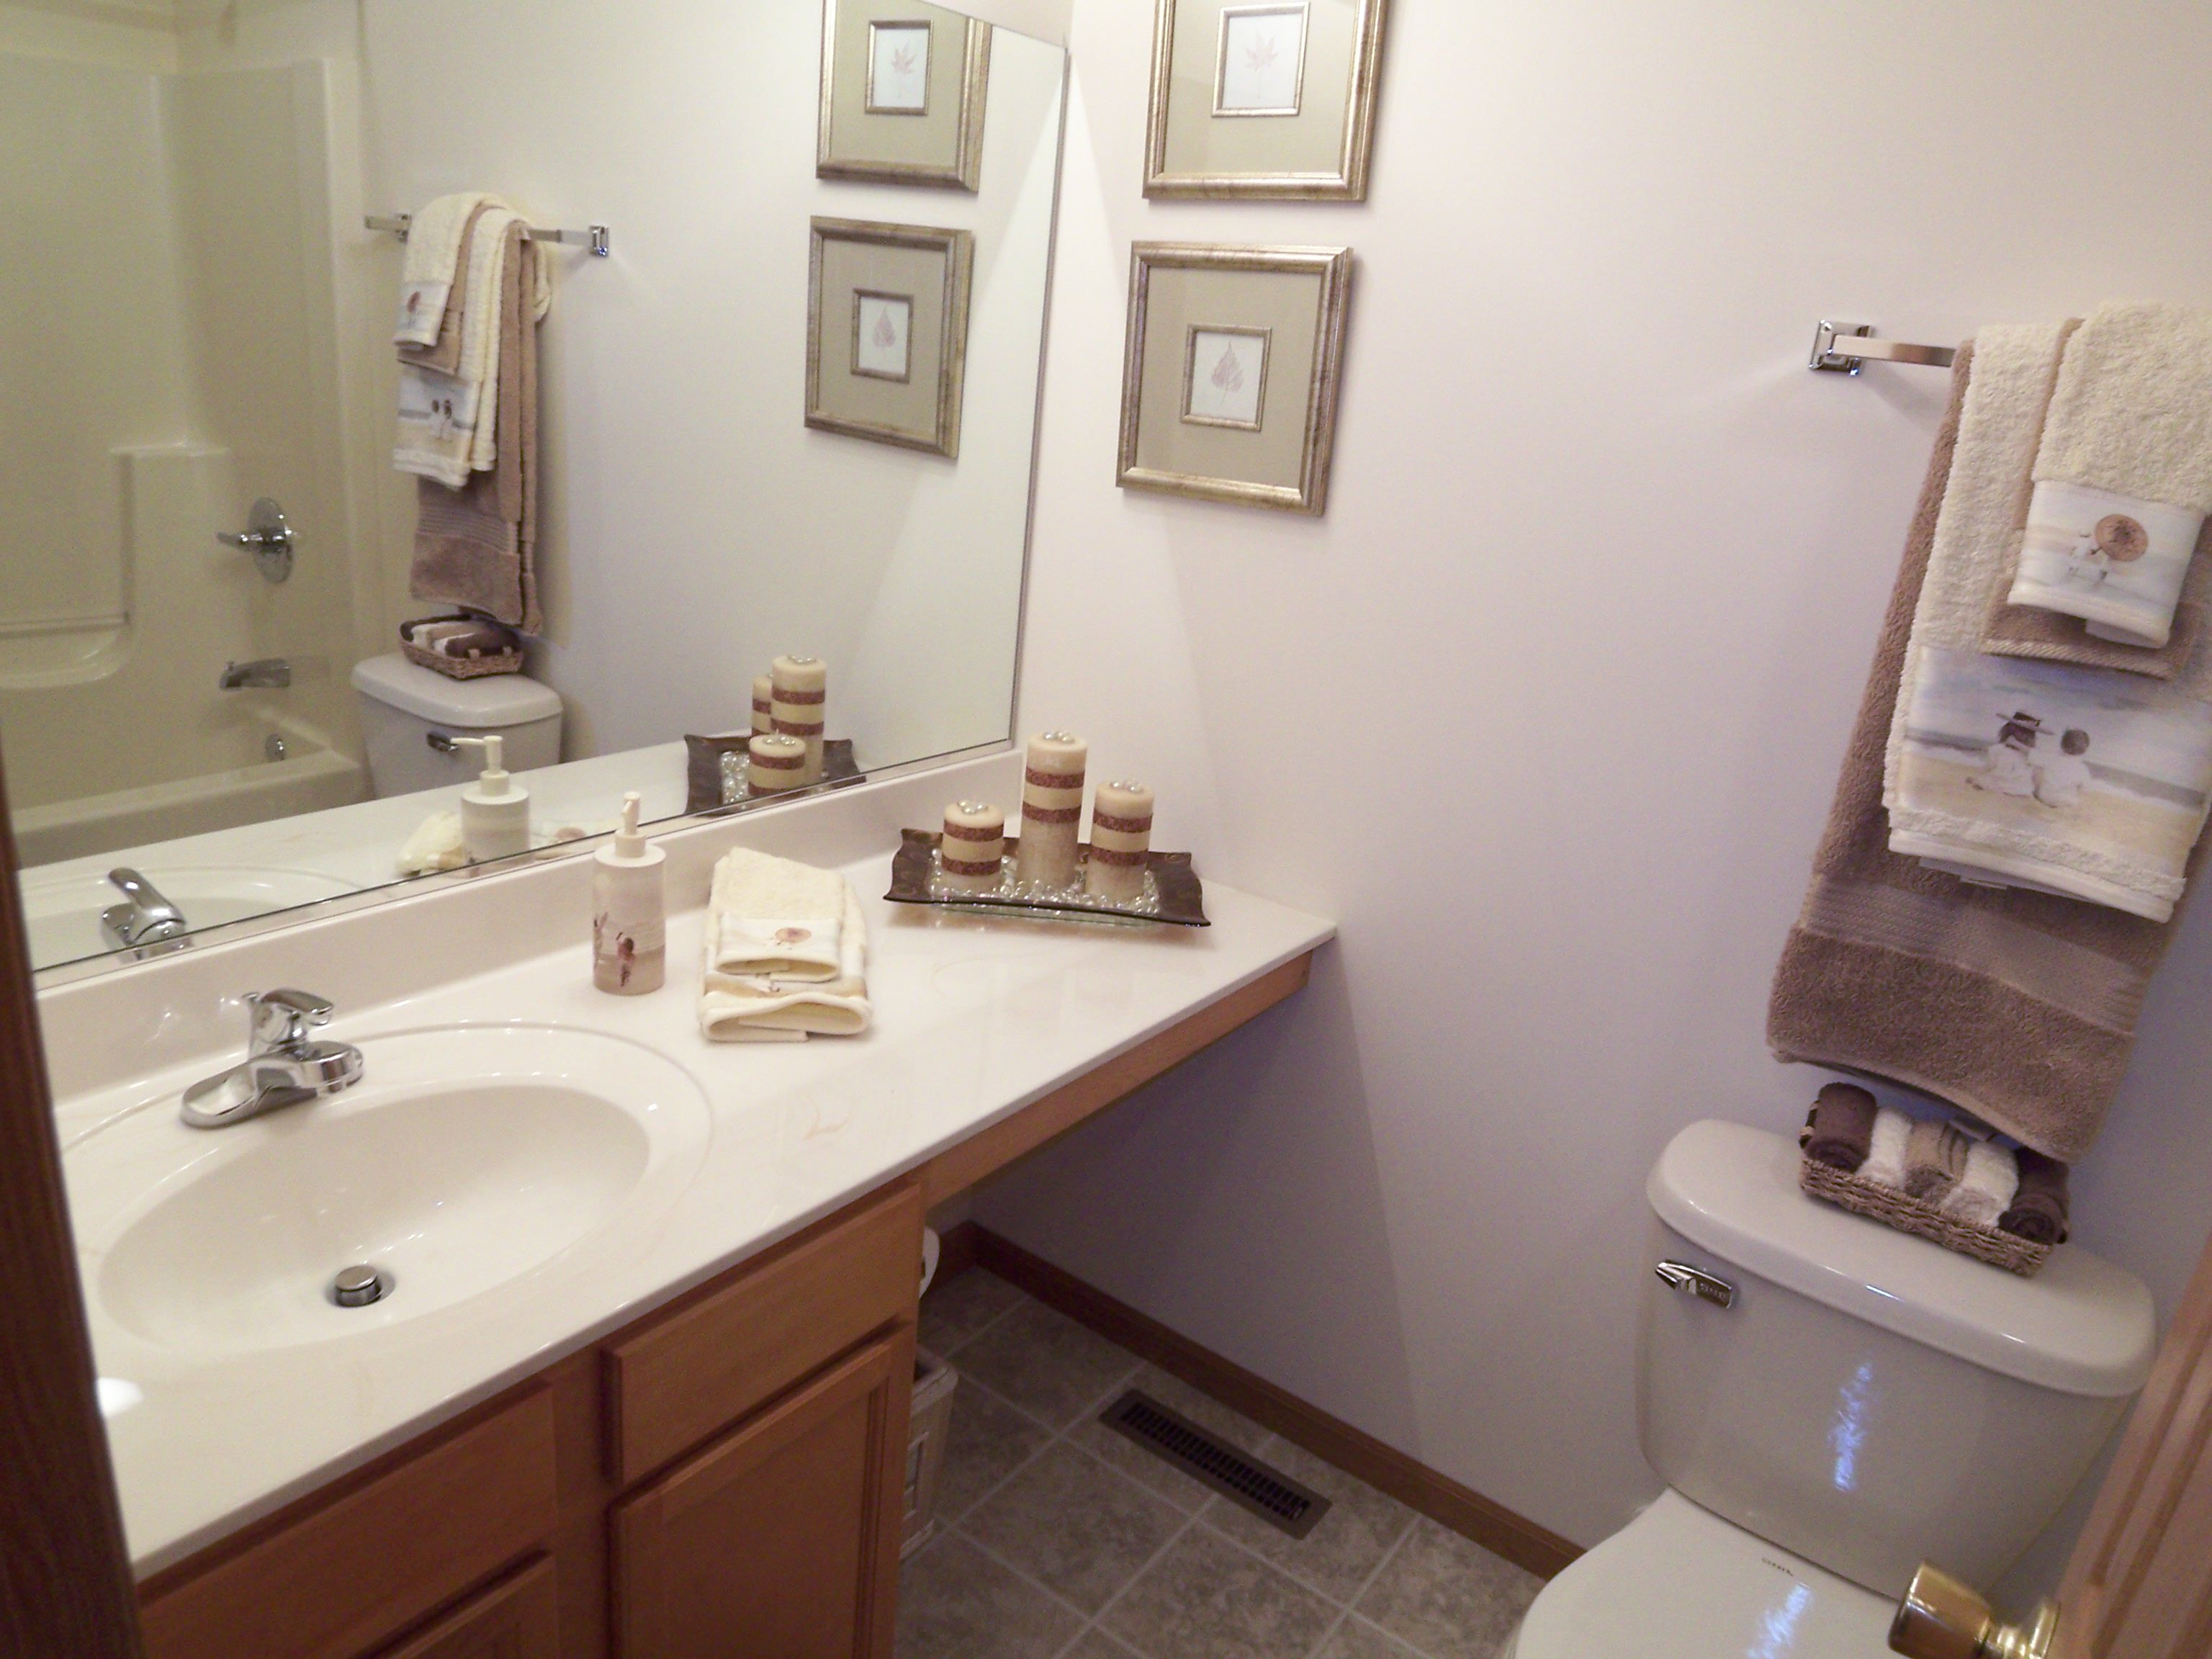 Bathroom featured in the Parkwood By Accent Homes Inc. in Gary, IN